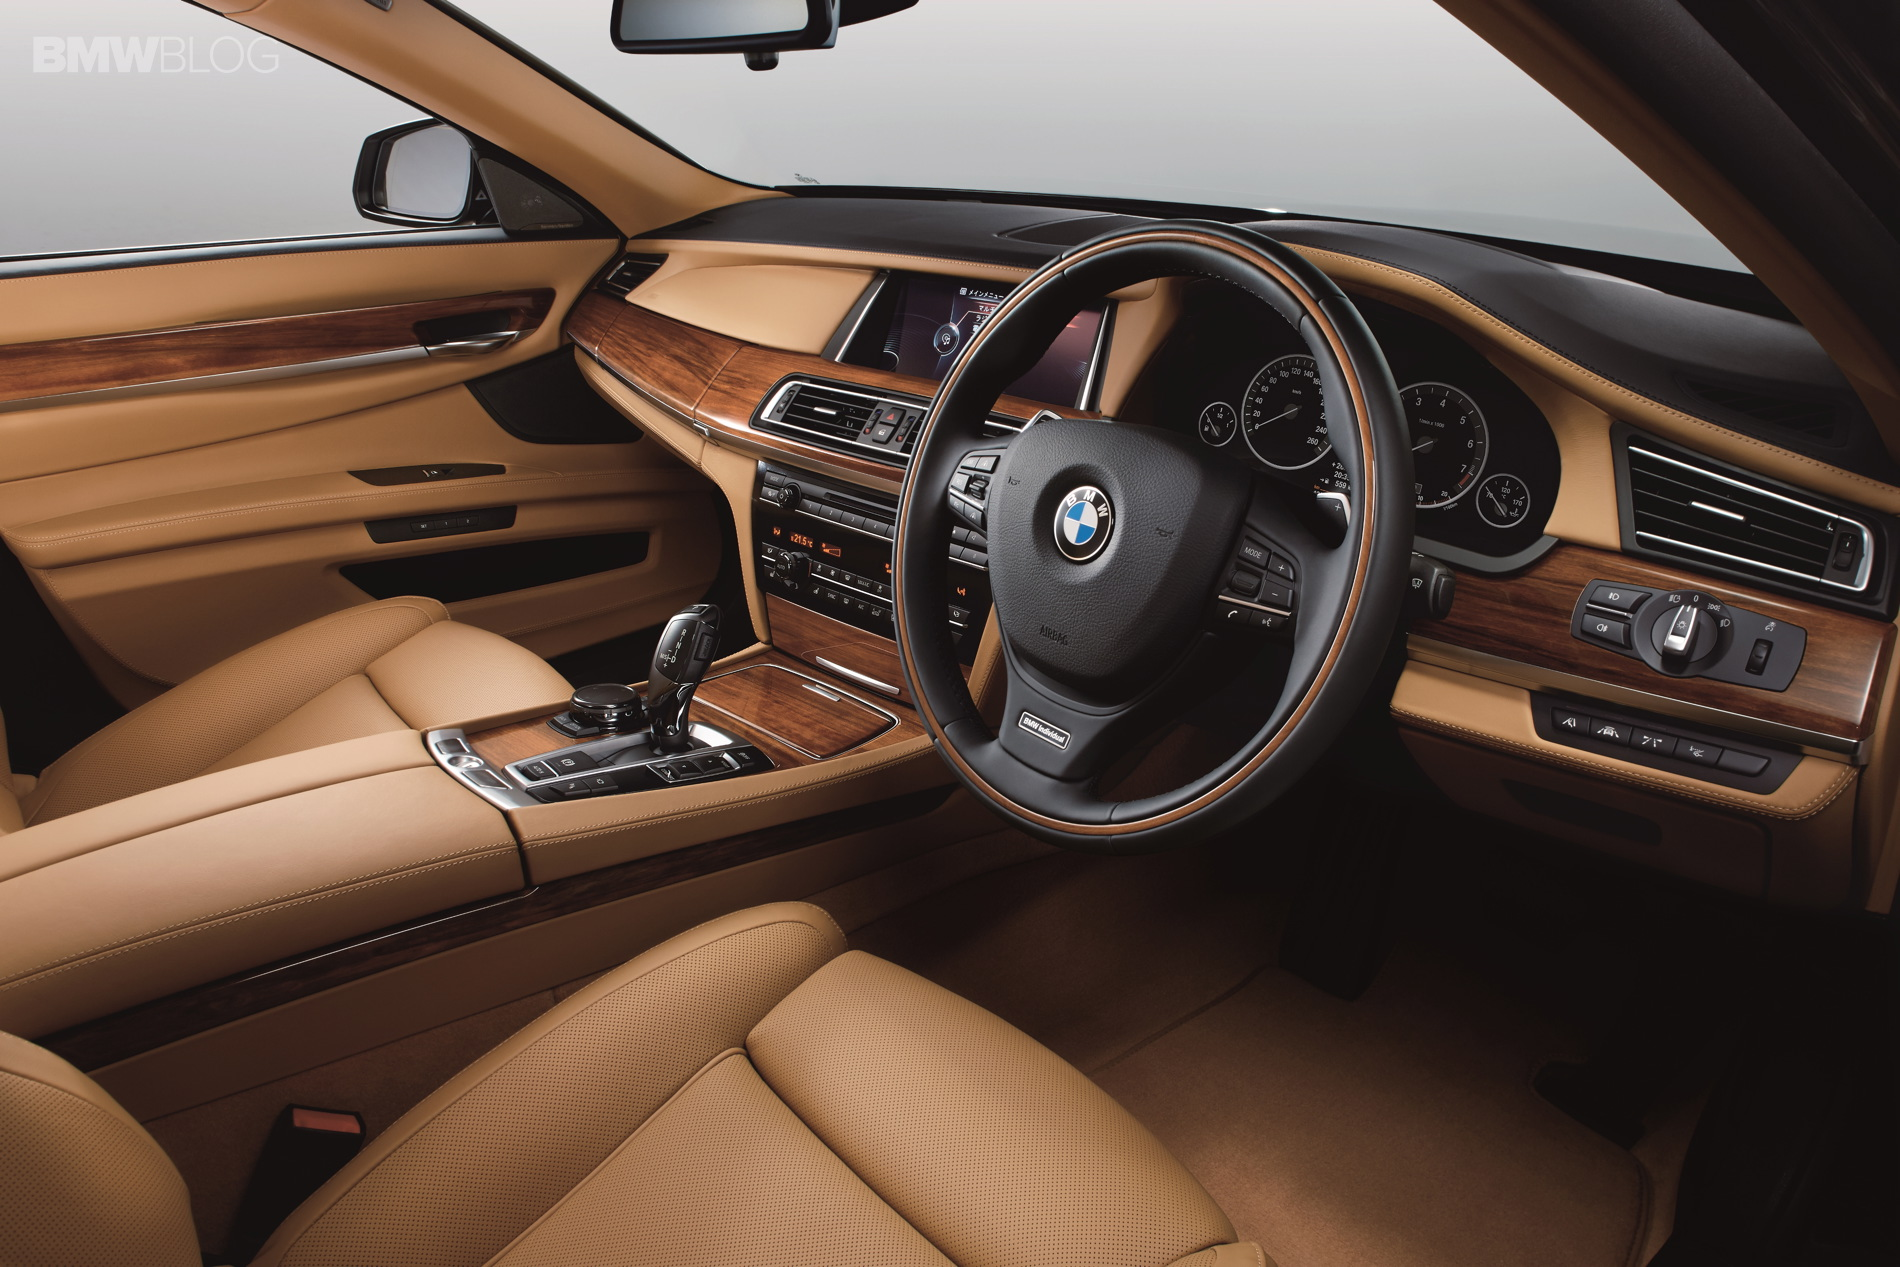 2015 Bmw Activehybrid 7 #5